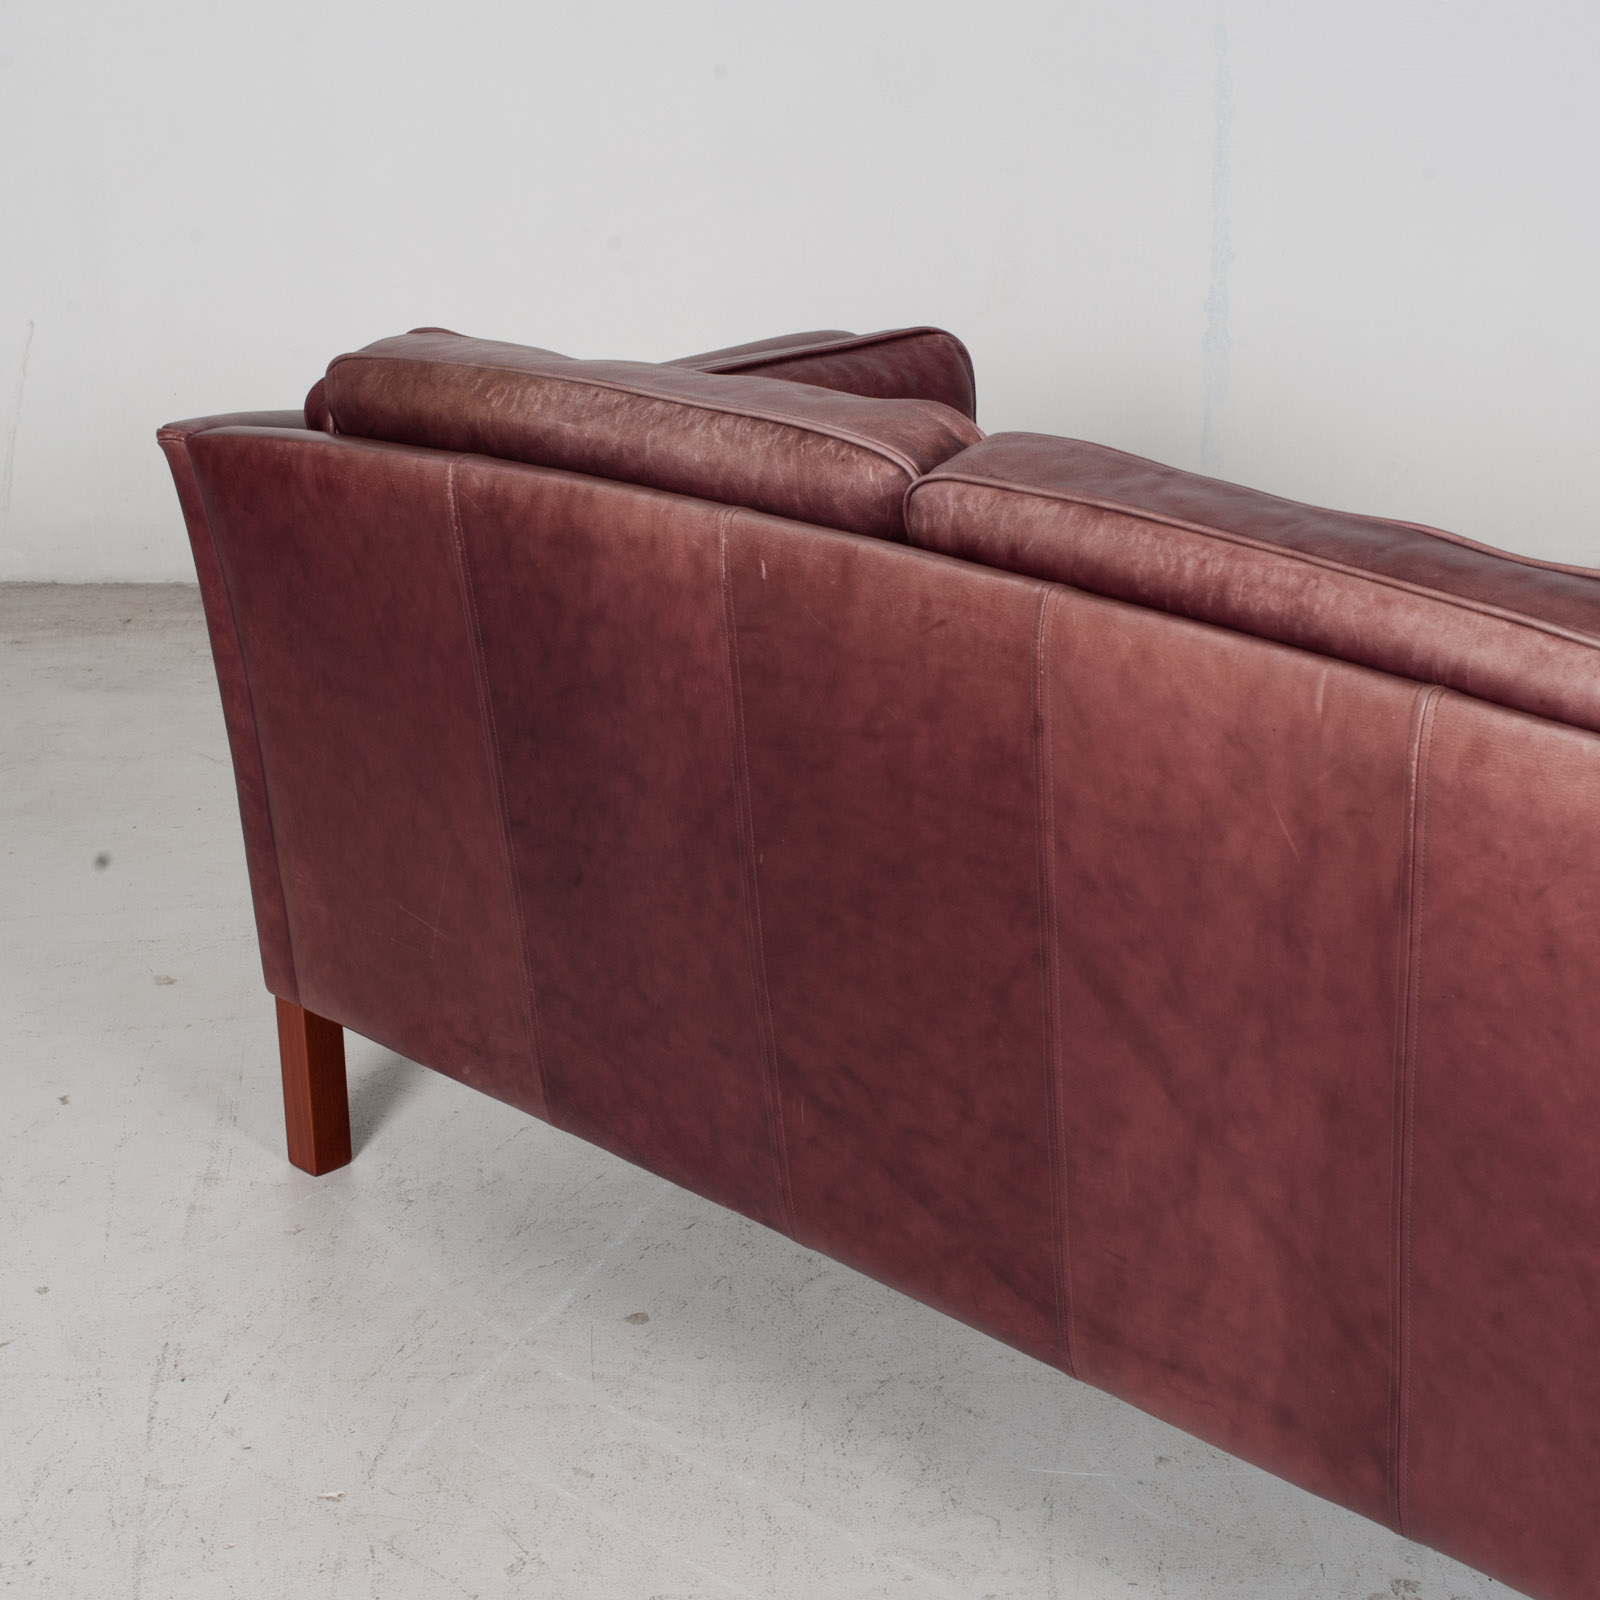 3 Seat Sofa By Mogens Hansen In Red Leather, 1960s, Denmark 9